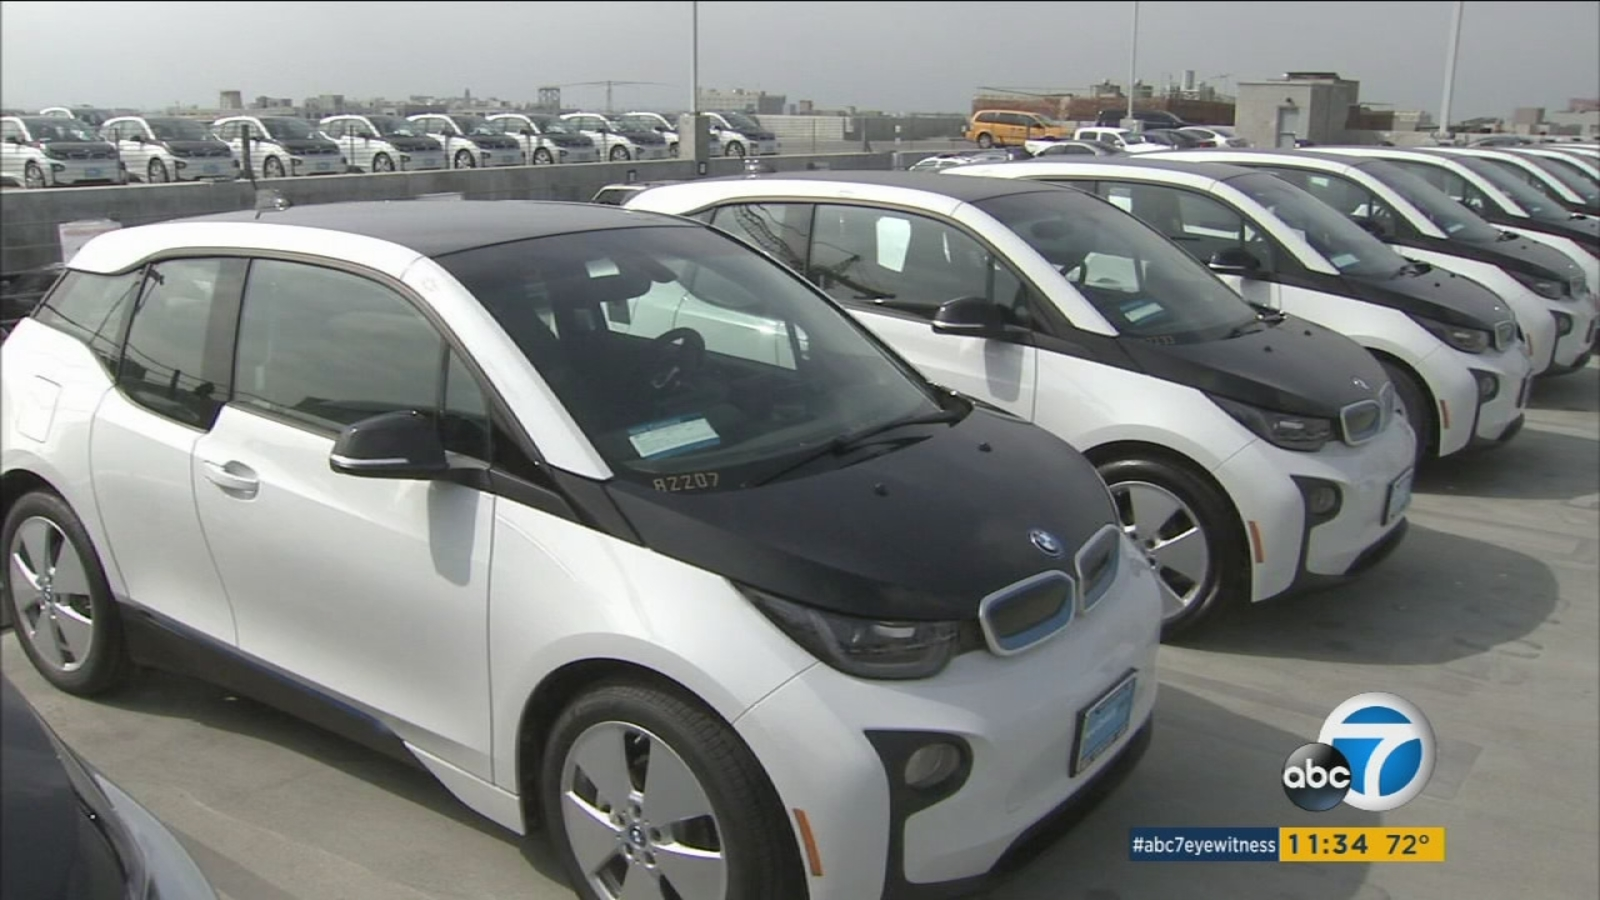 Lapd Unveils 100 Electric Car Fleet Making It Largest In Country For Police Department Abc7